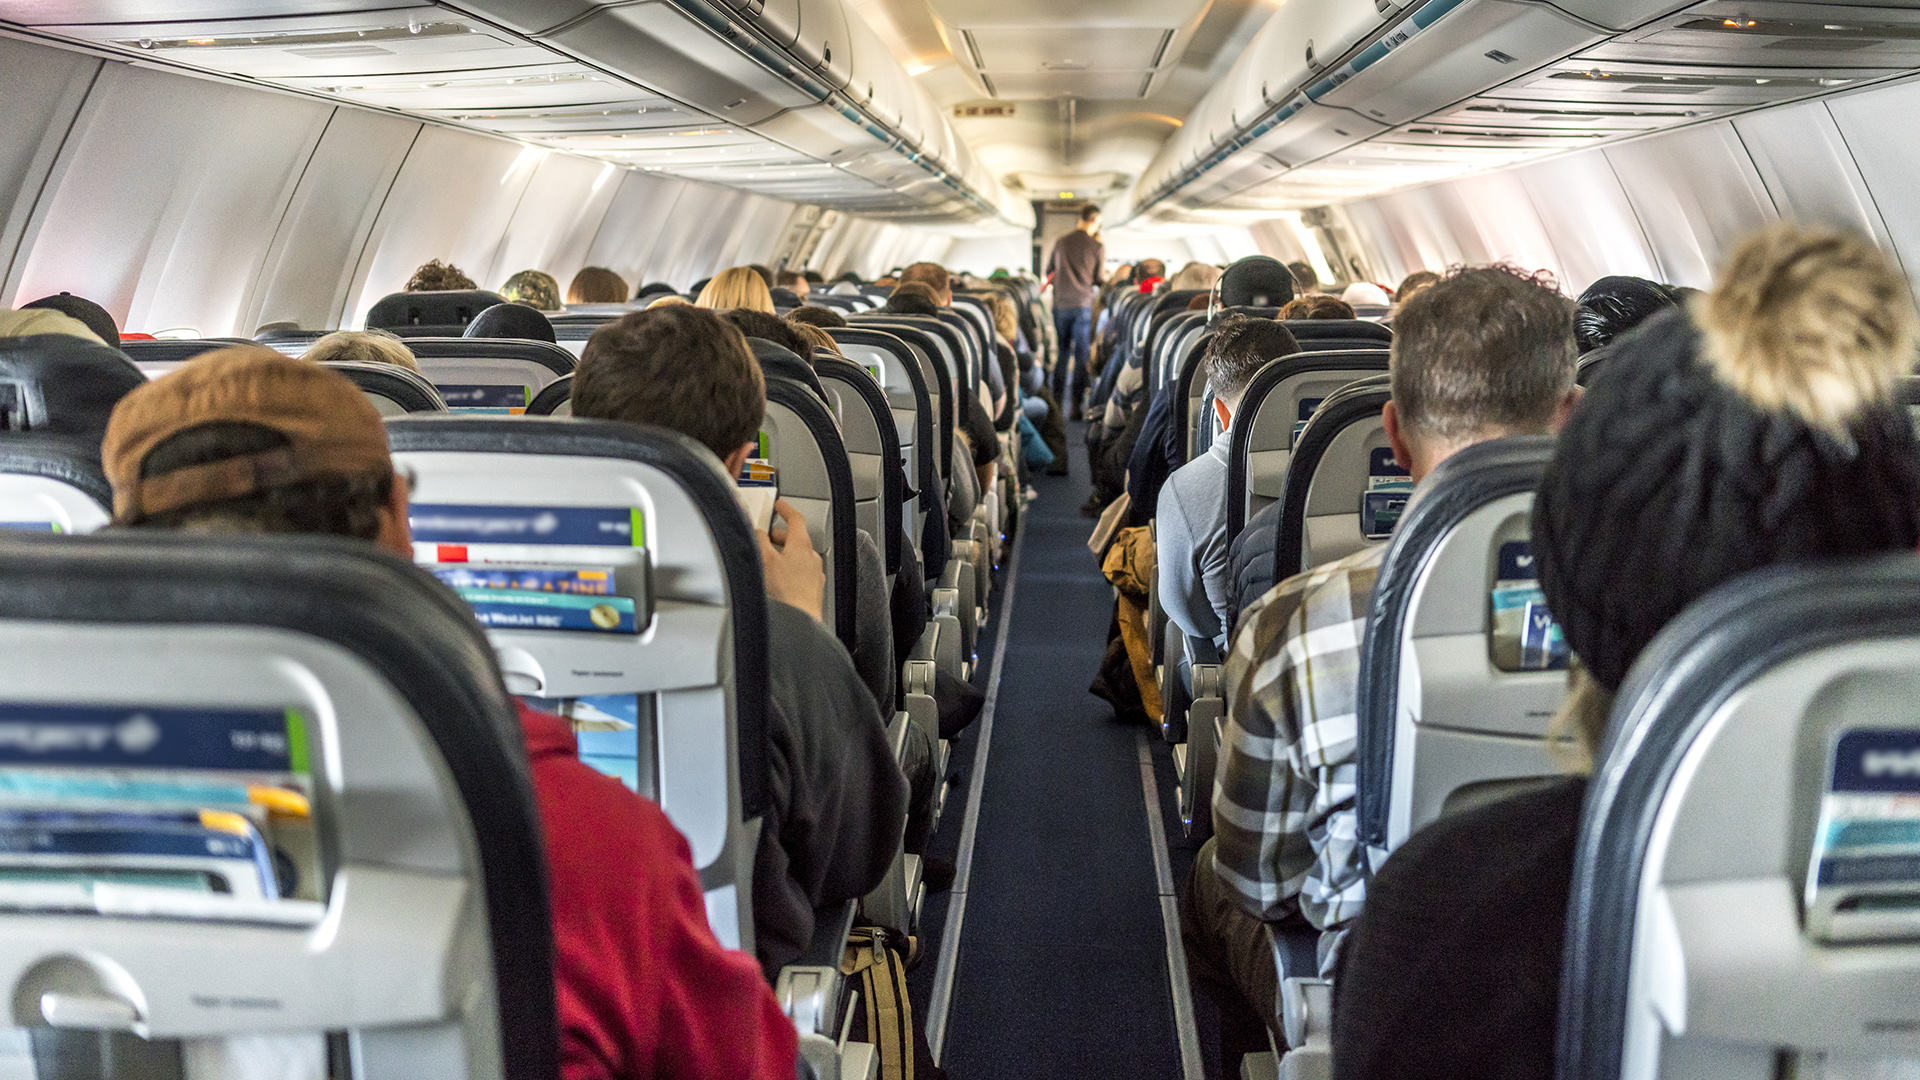 People-employee-plane-safety-precaution-crowd